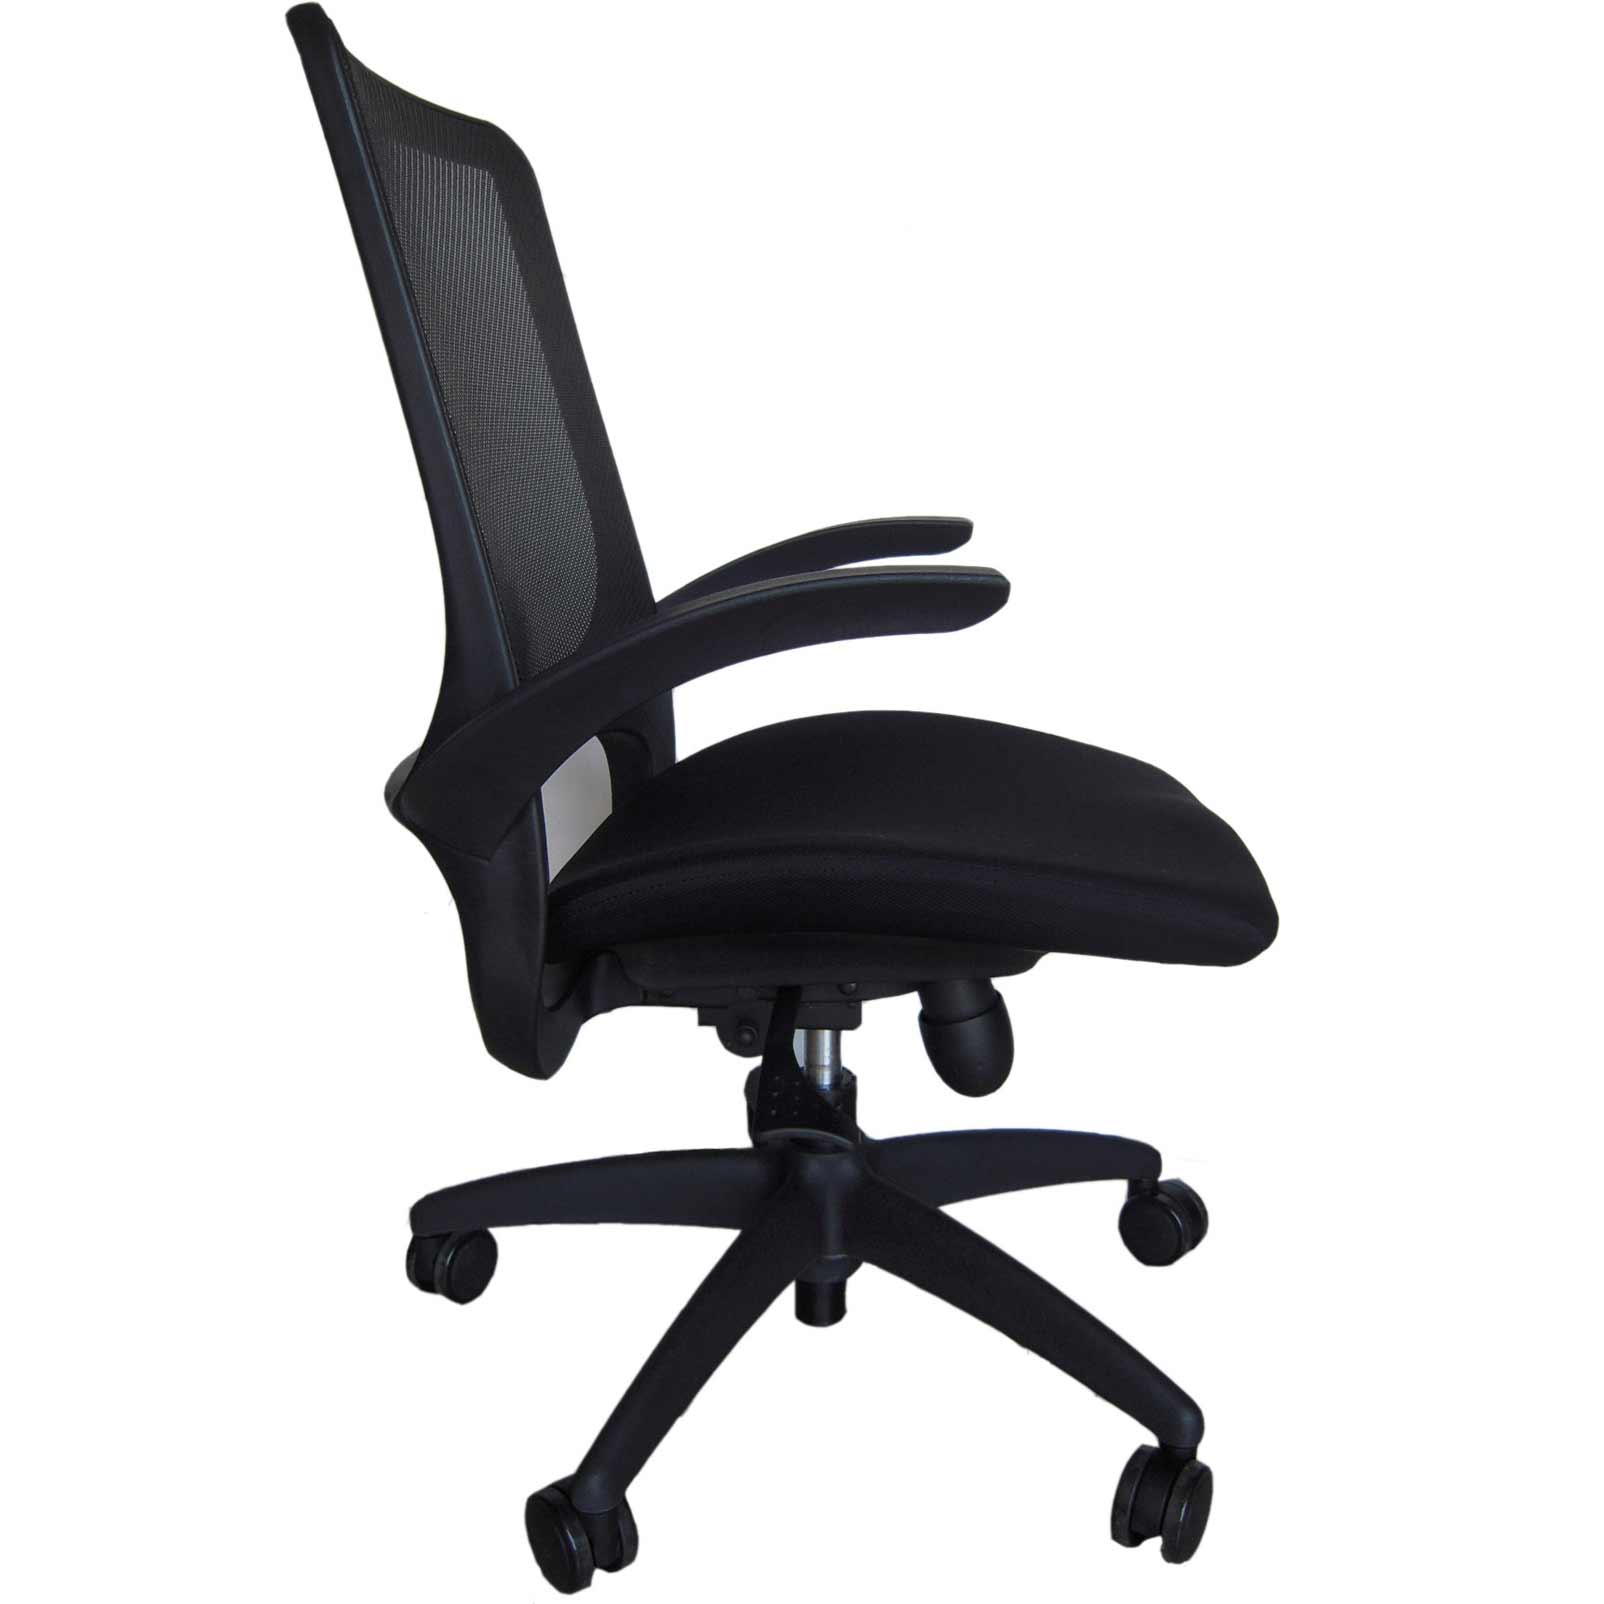 Solid Black Office Mesh Chair with Lumbar Support